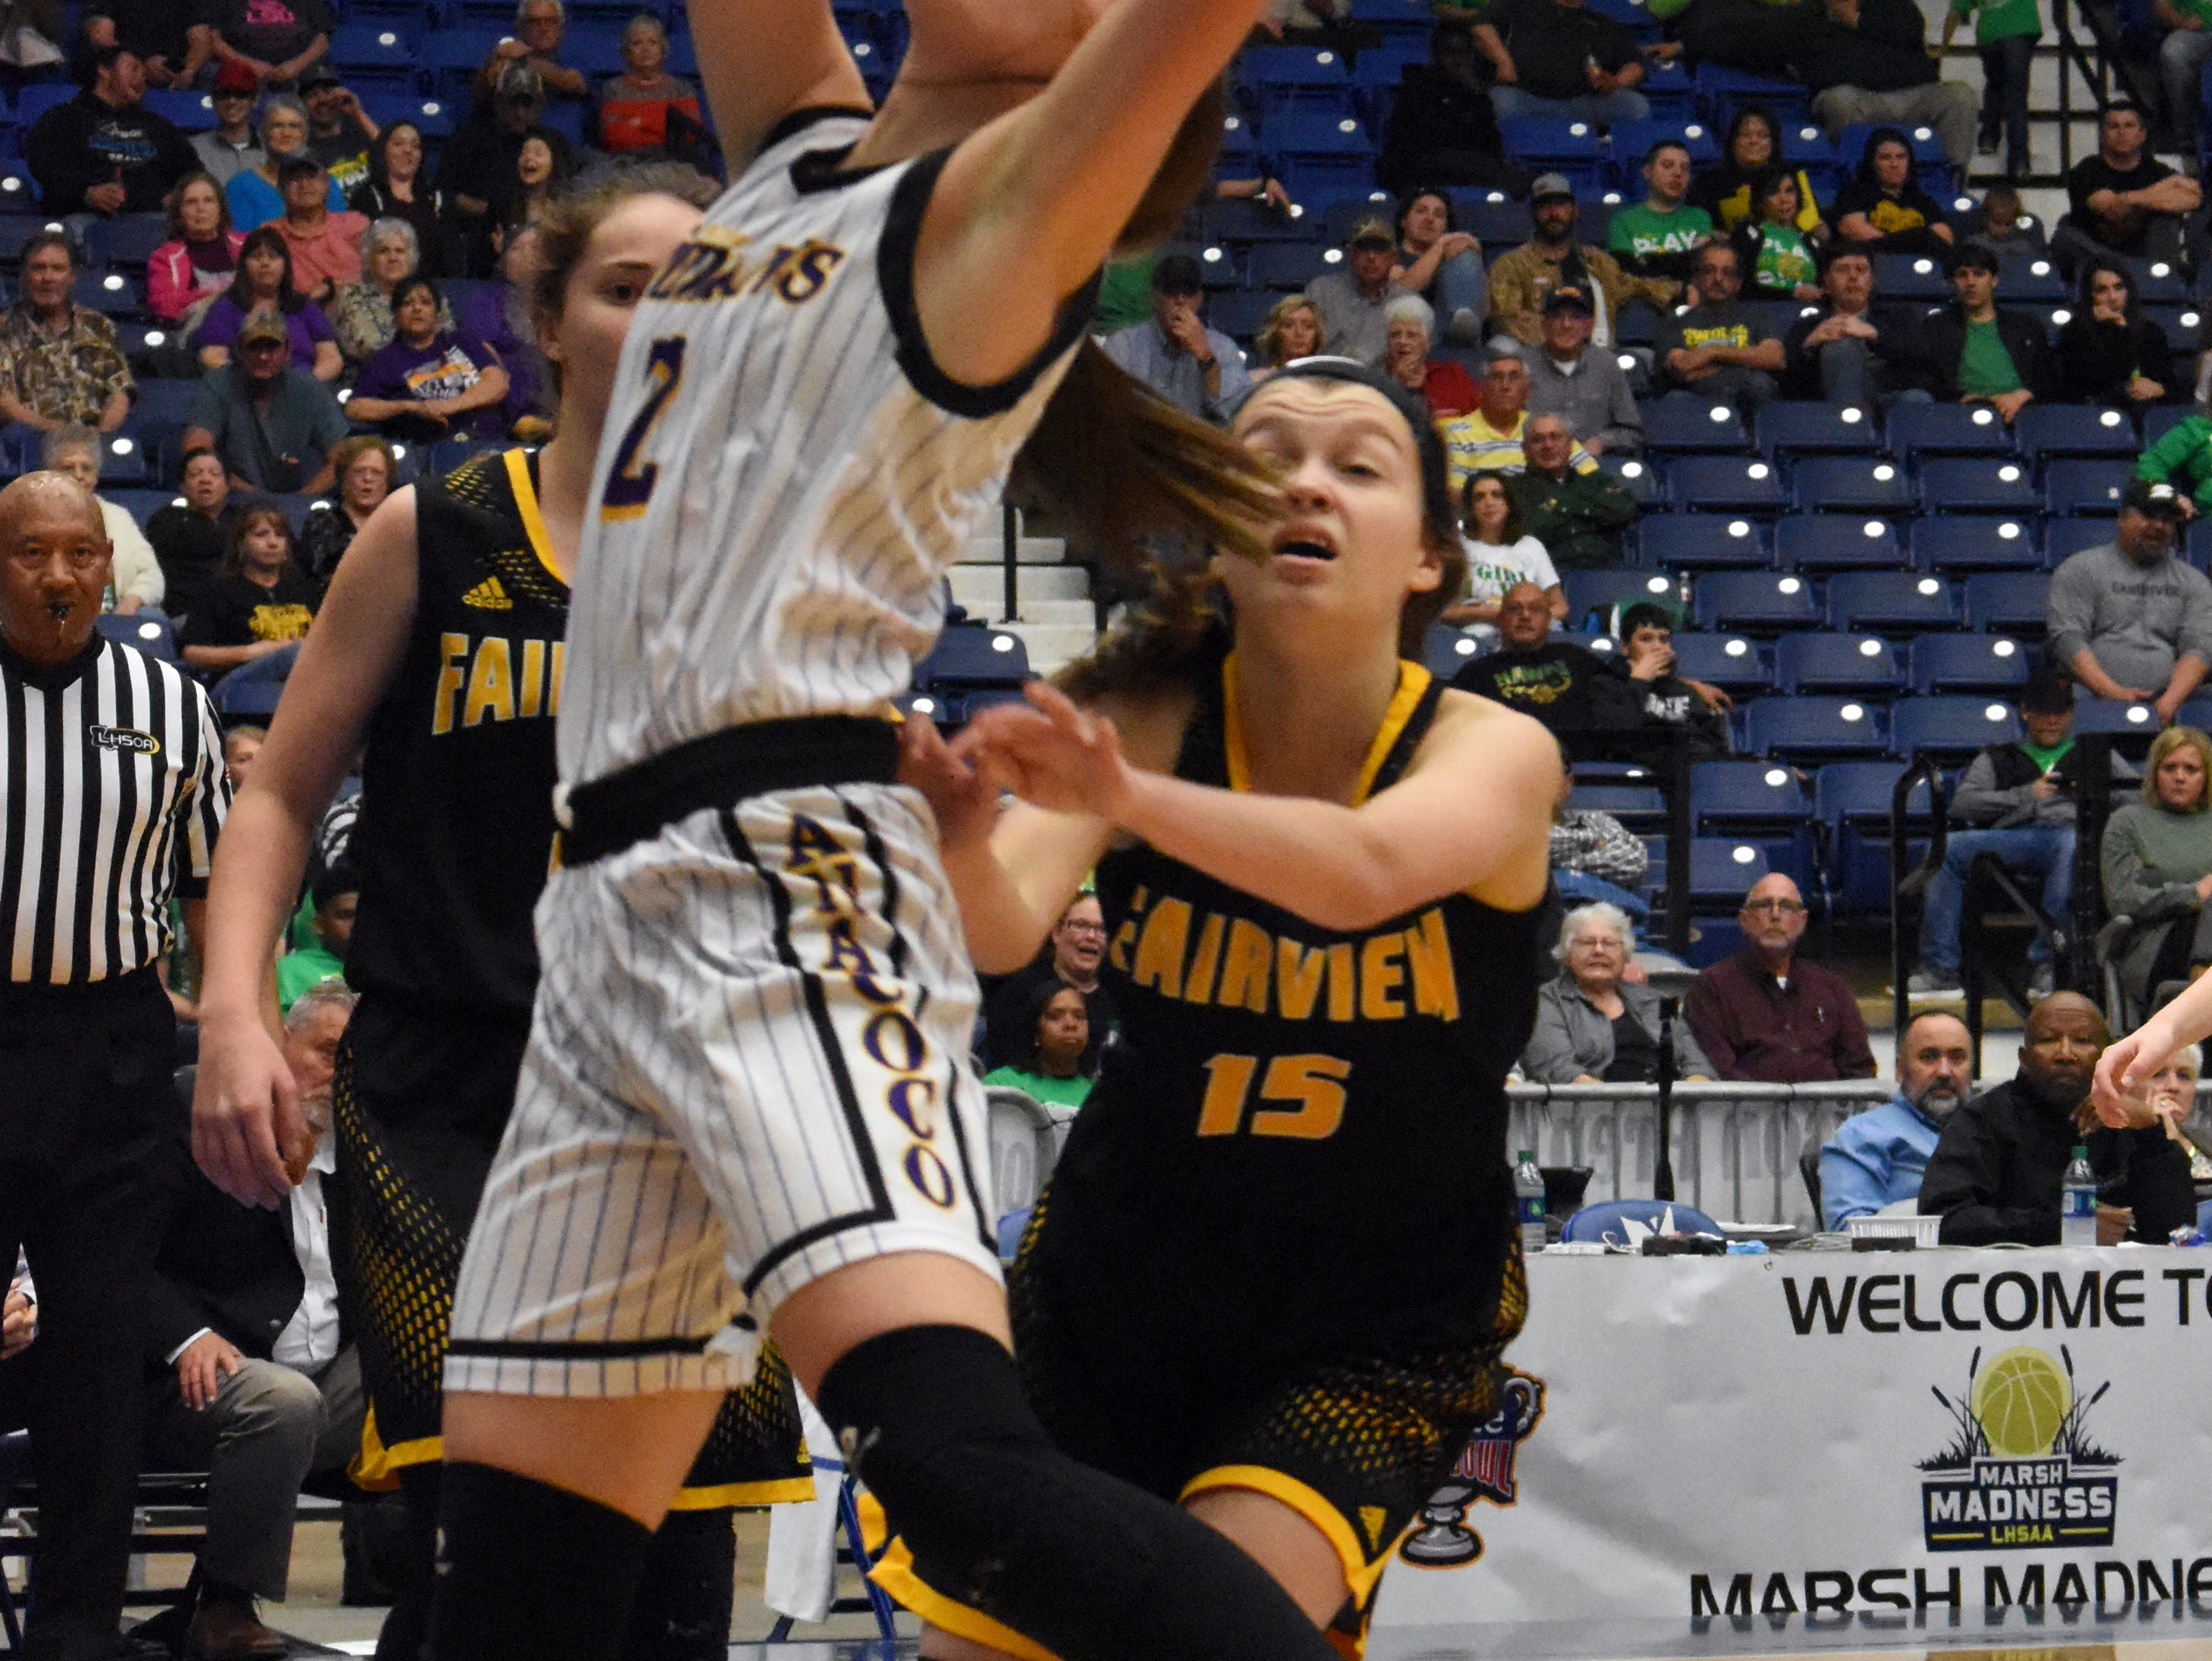 Anacoco High School defeated Fairview High School 59-46 in the semifinals of the Class B 2019 Allstate Sugar Bowl LHSAA girls' State Basketball Marsh Madness Tournament held Wednesday, Feb. 27, 2019 at the Rapides Parish Coliseum. Anacoco advances to the state championship tournament against Hicks High School.